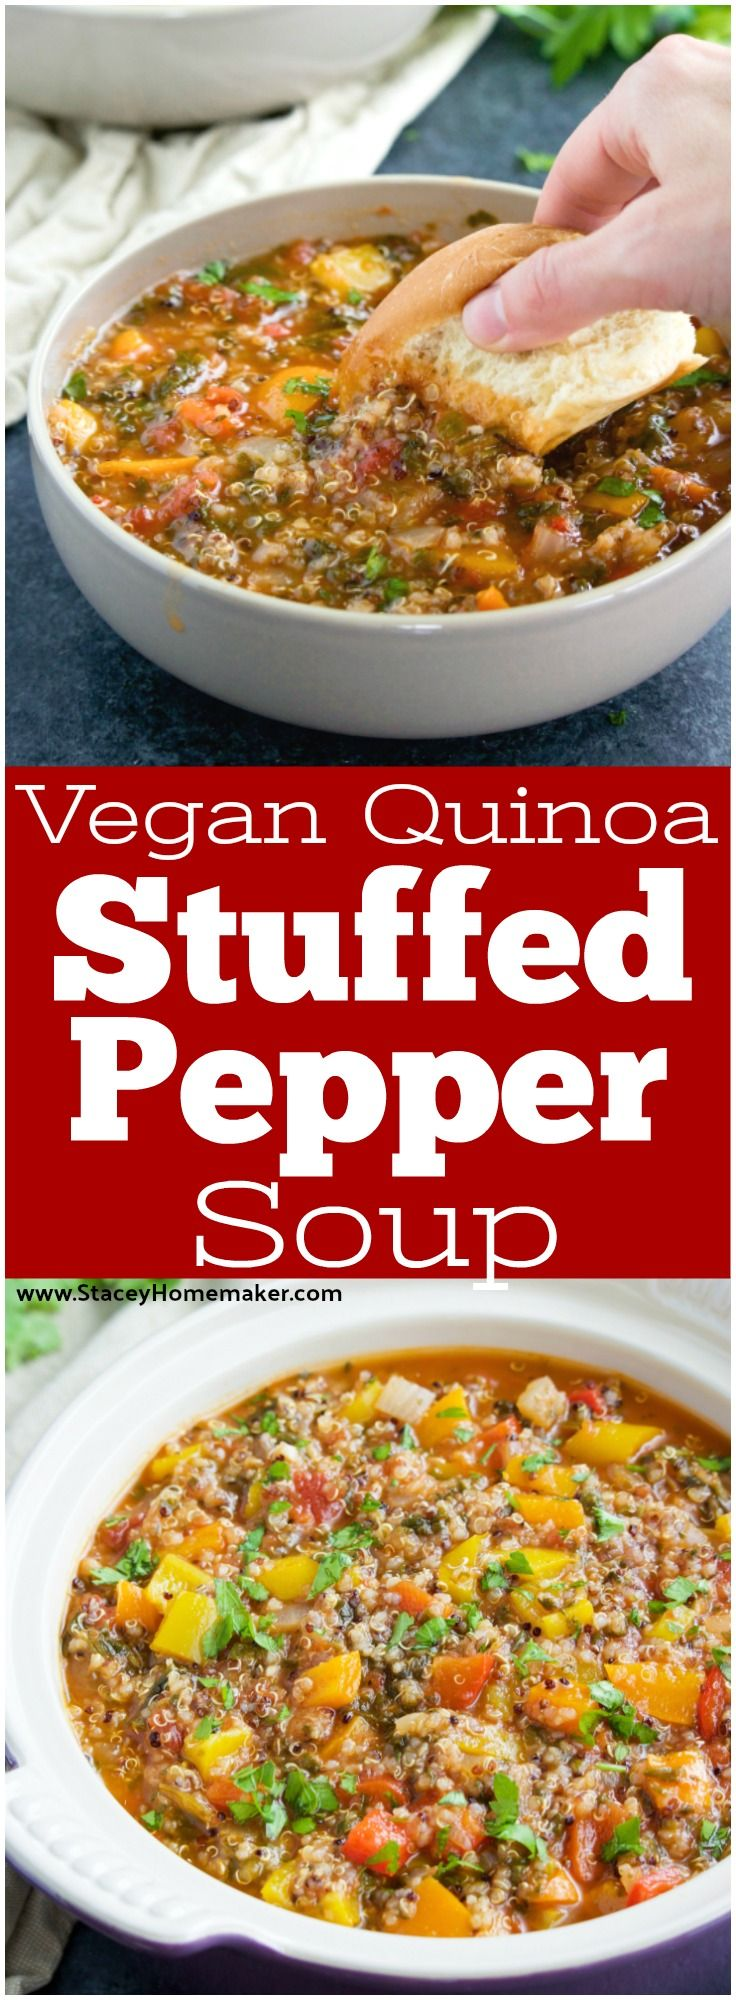 This Easy Stuffed Pepper Soup Recipe Has Everything You Love About Stuffed Peppers Without All The Fuss No Stuffed Peppers Stuffed Pepper Soup Vegan Crockpot